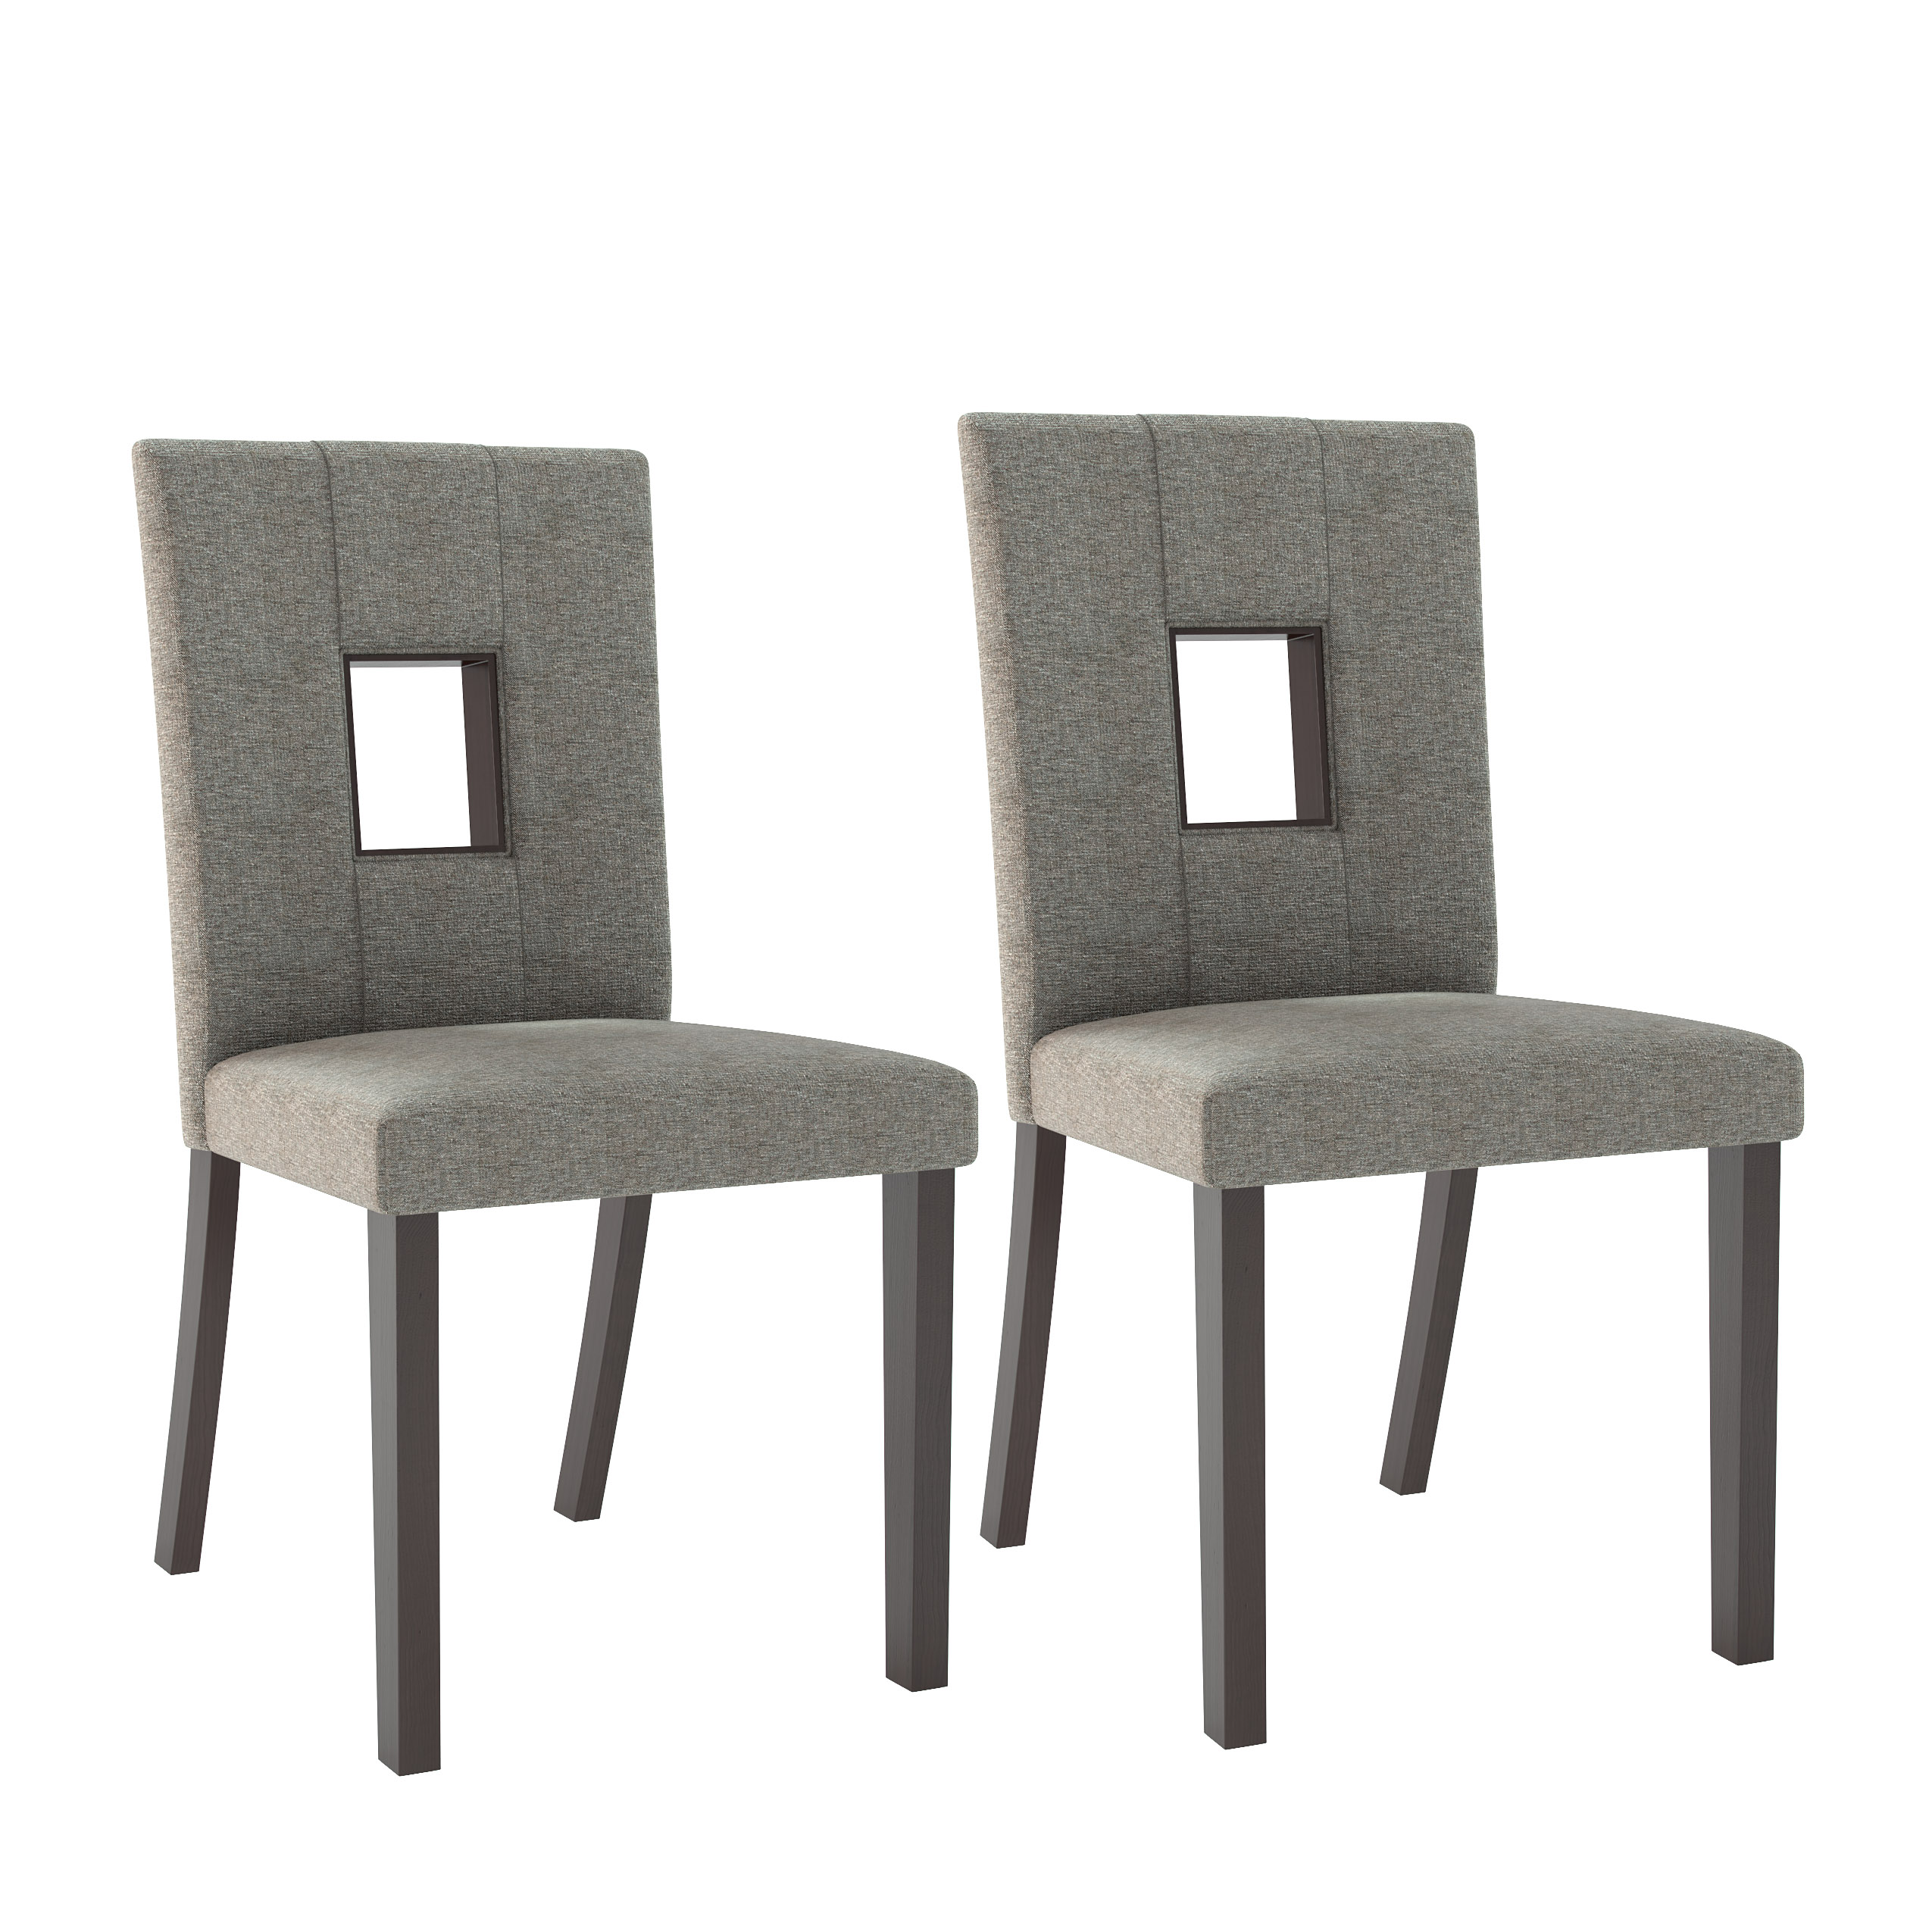 Corliving Bistro Dining Chairs Set Of 2